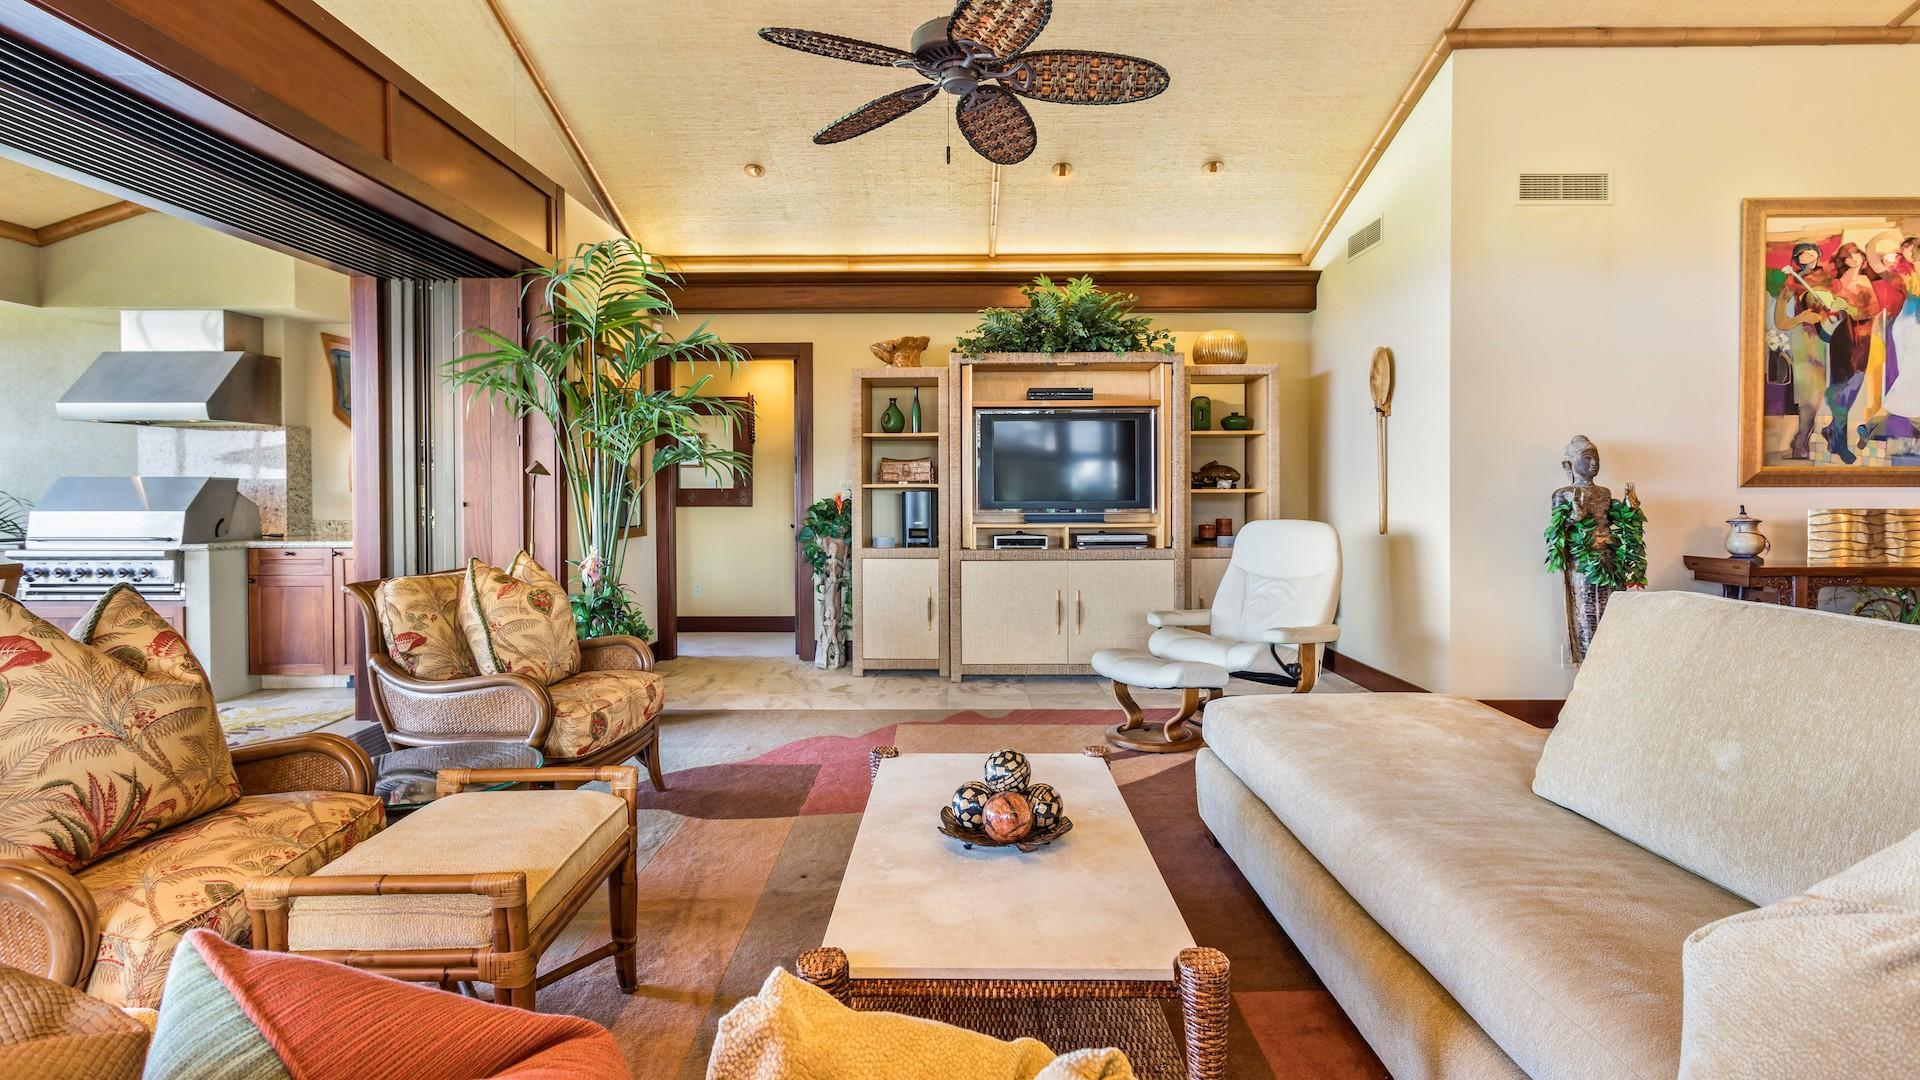 Side View of Living Area with Ample Seating & Flatscreen TV - Pocket Doors to Lanai for Indoor/Outdoor Living.